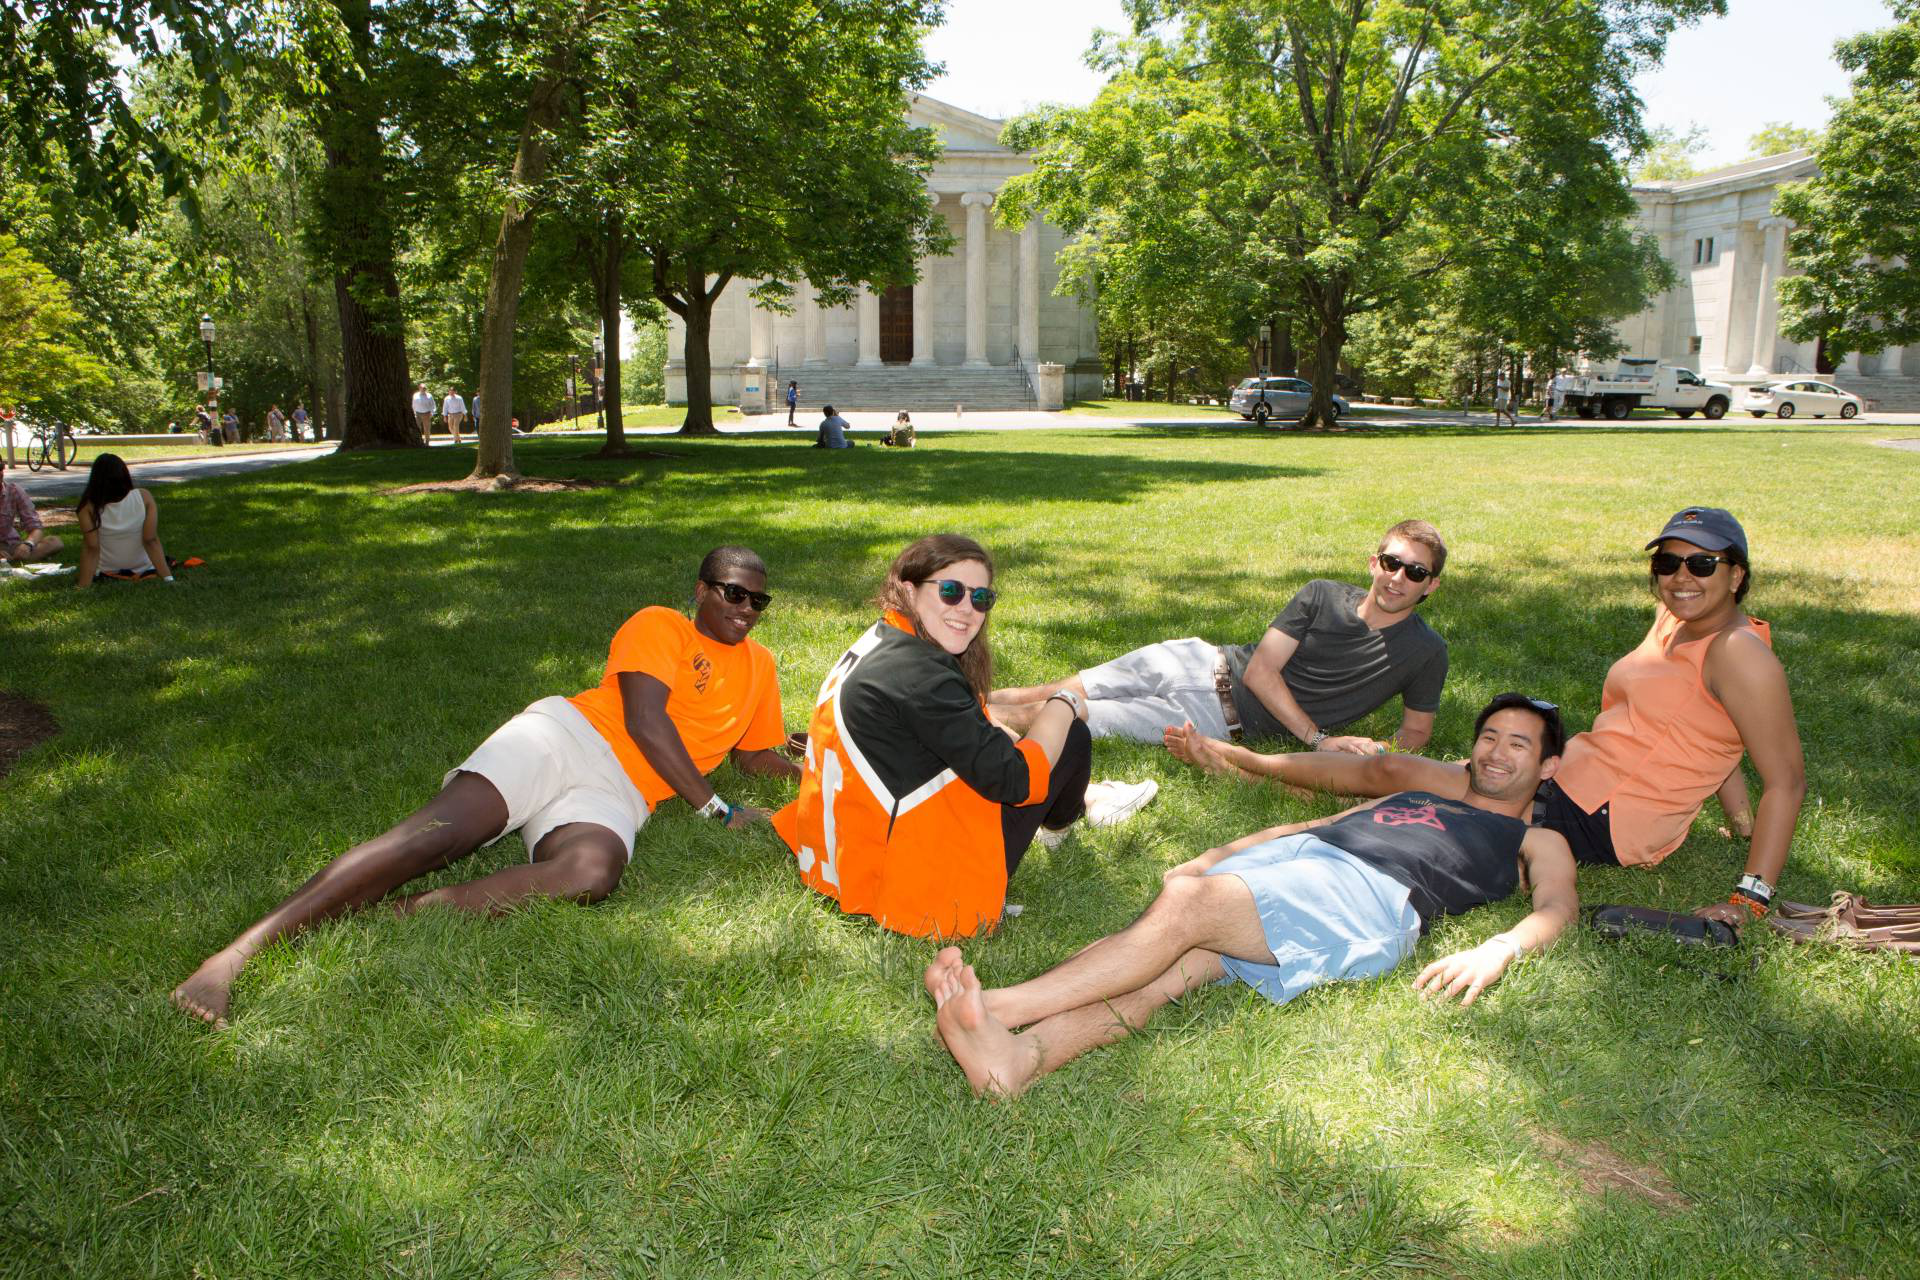 Photo of alumni lying on grass on Cannon Green.